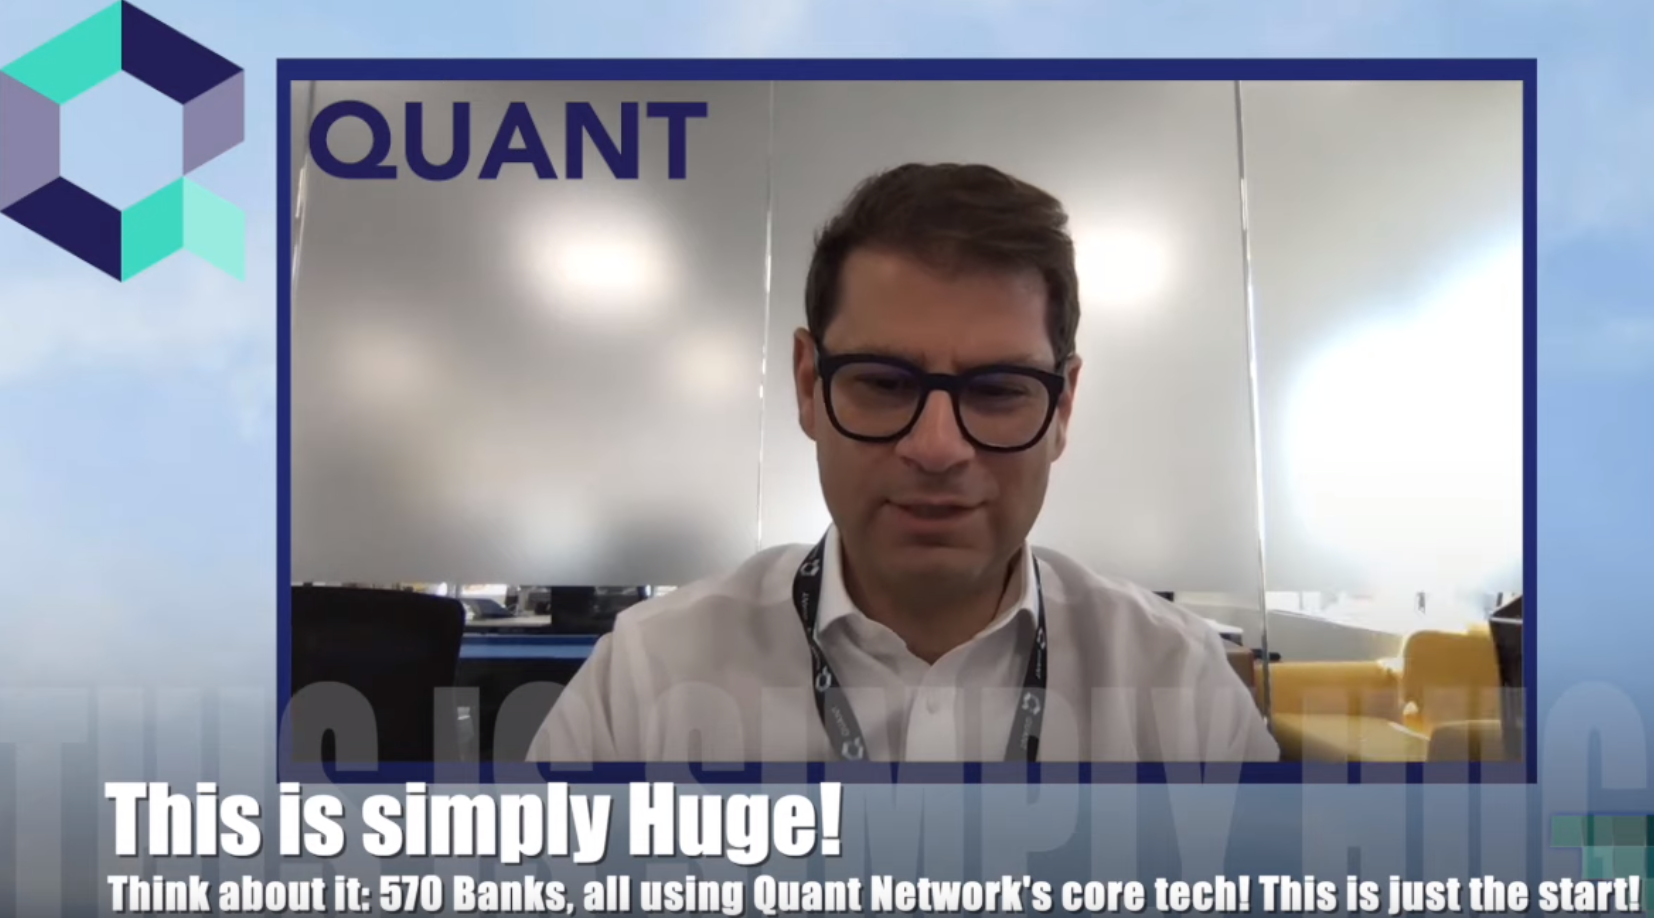 Blockchain Brad Interview with Quant Network CEO — 570 Banks, Rearchitecting the Financial System…